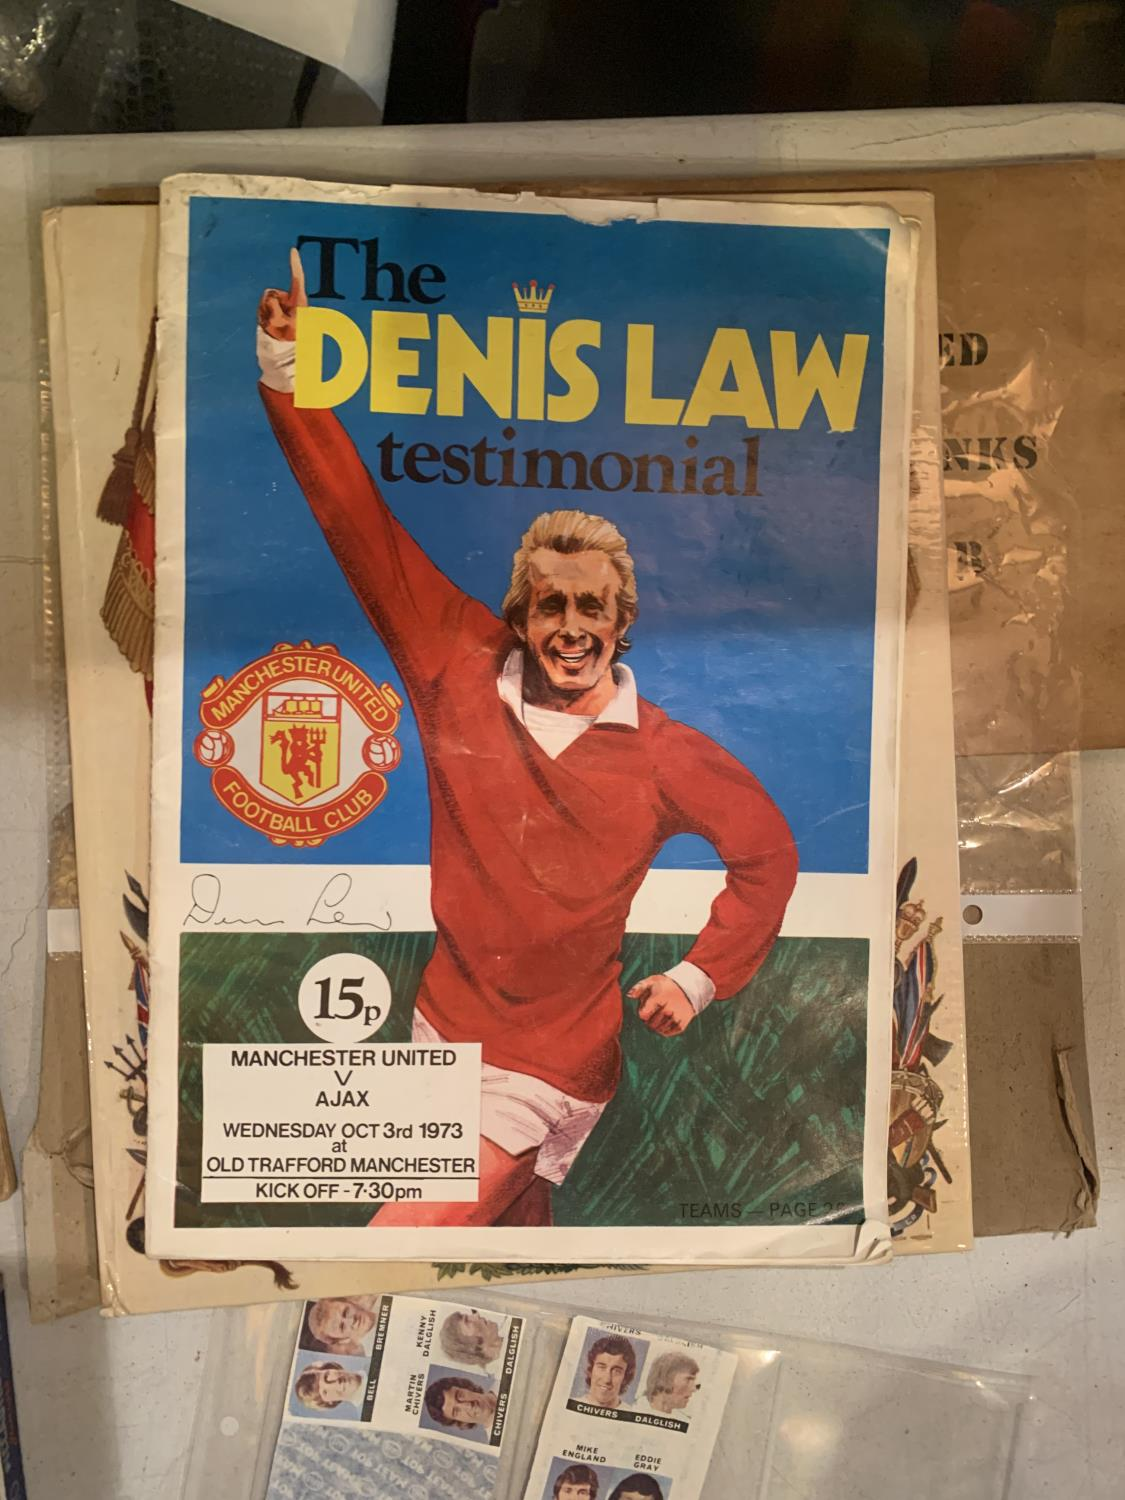 A LARGE QUANTITY OF EPHEMERA TO INCLUDE A DENNIS LAW TESTOMNIAL PROGRAMME, VINTAGE CIGARETTE - Image 8 of 10